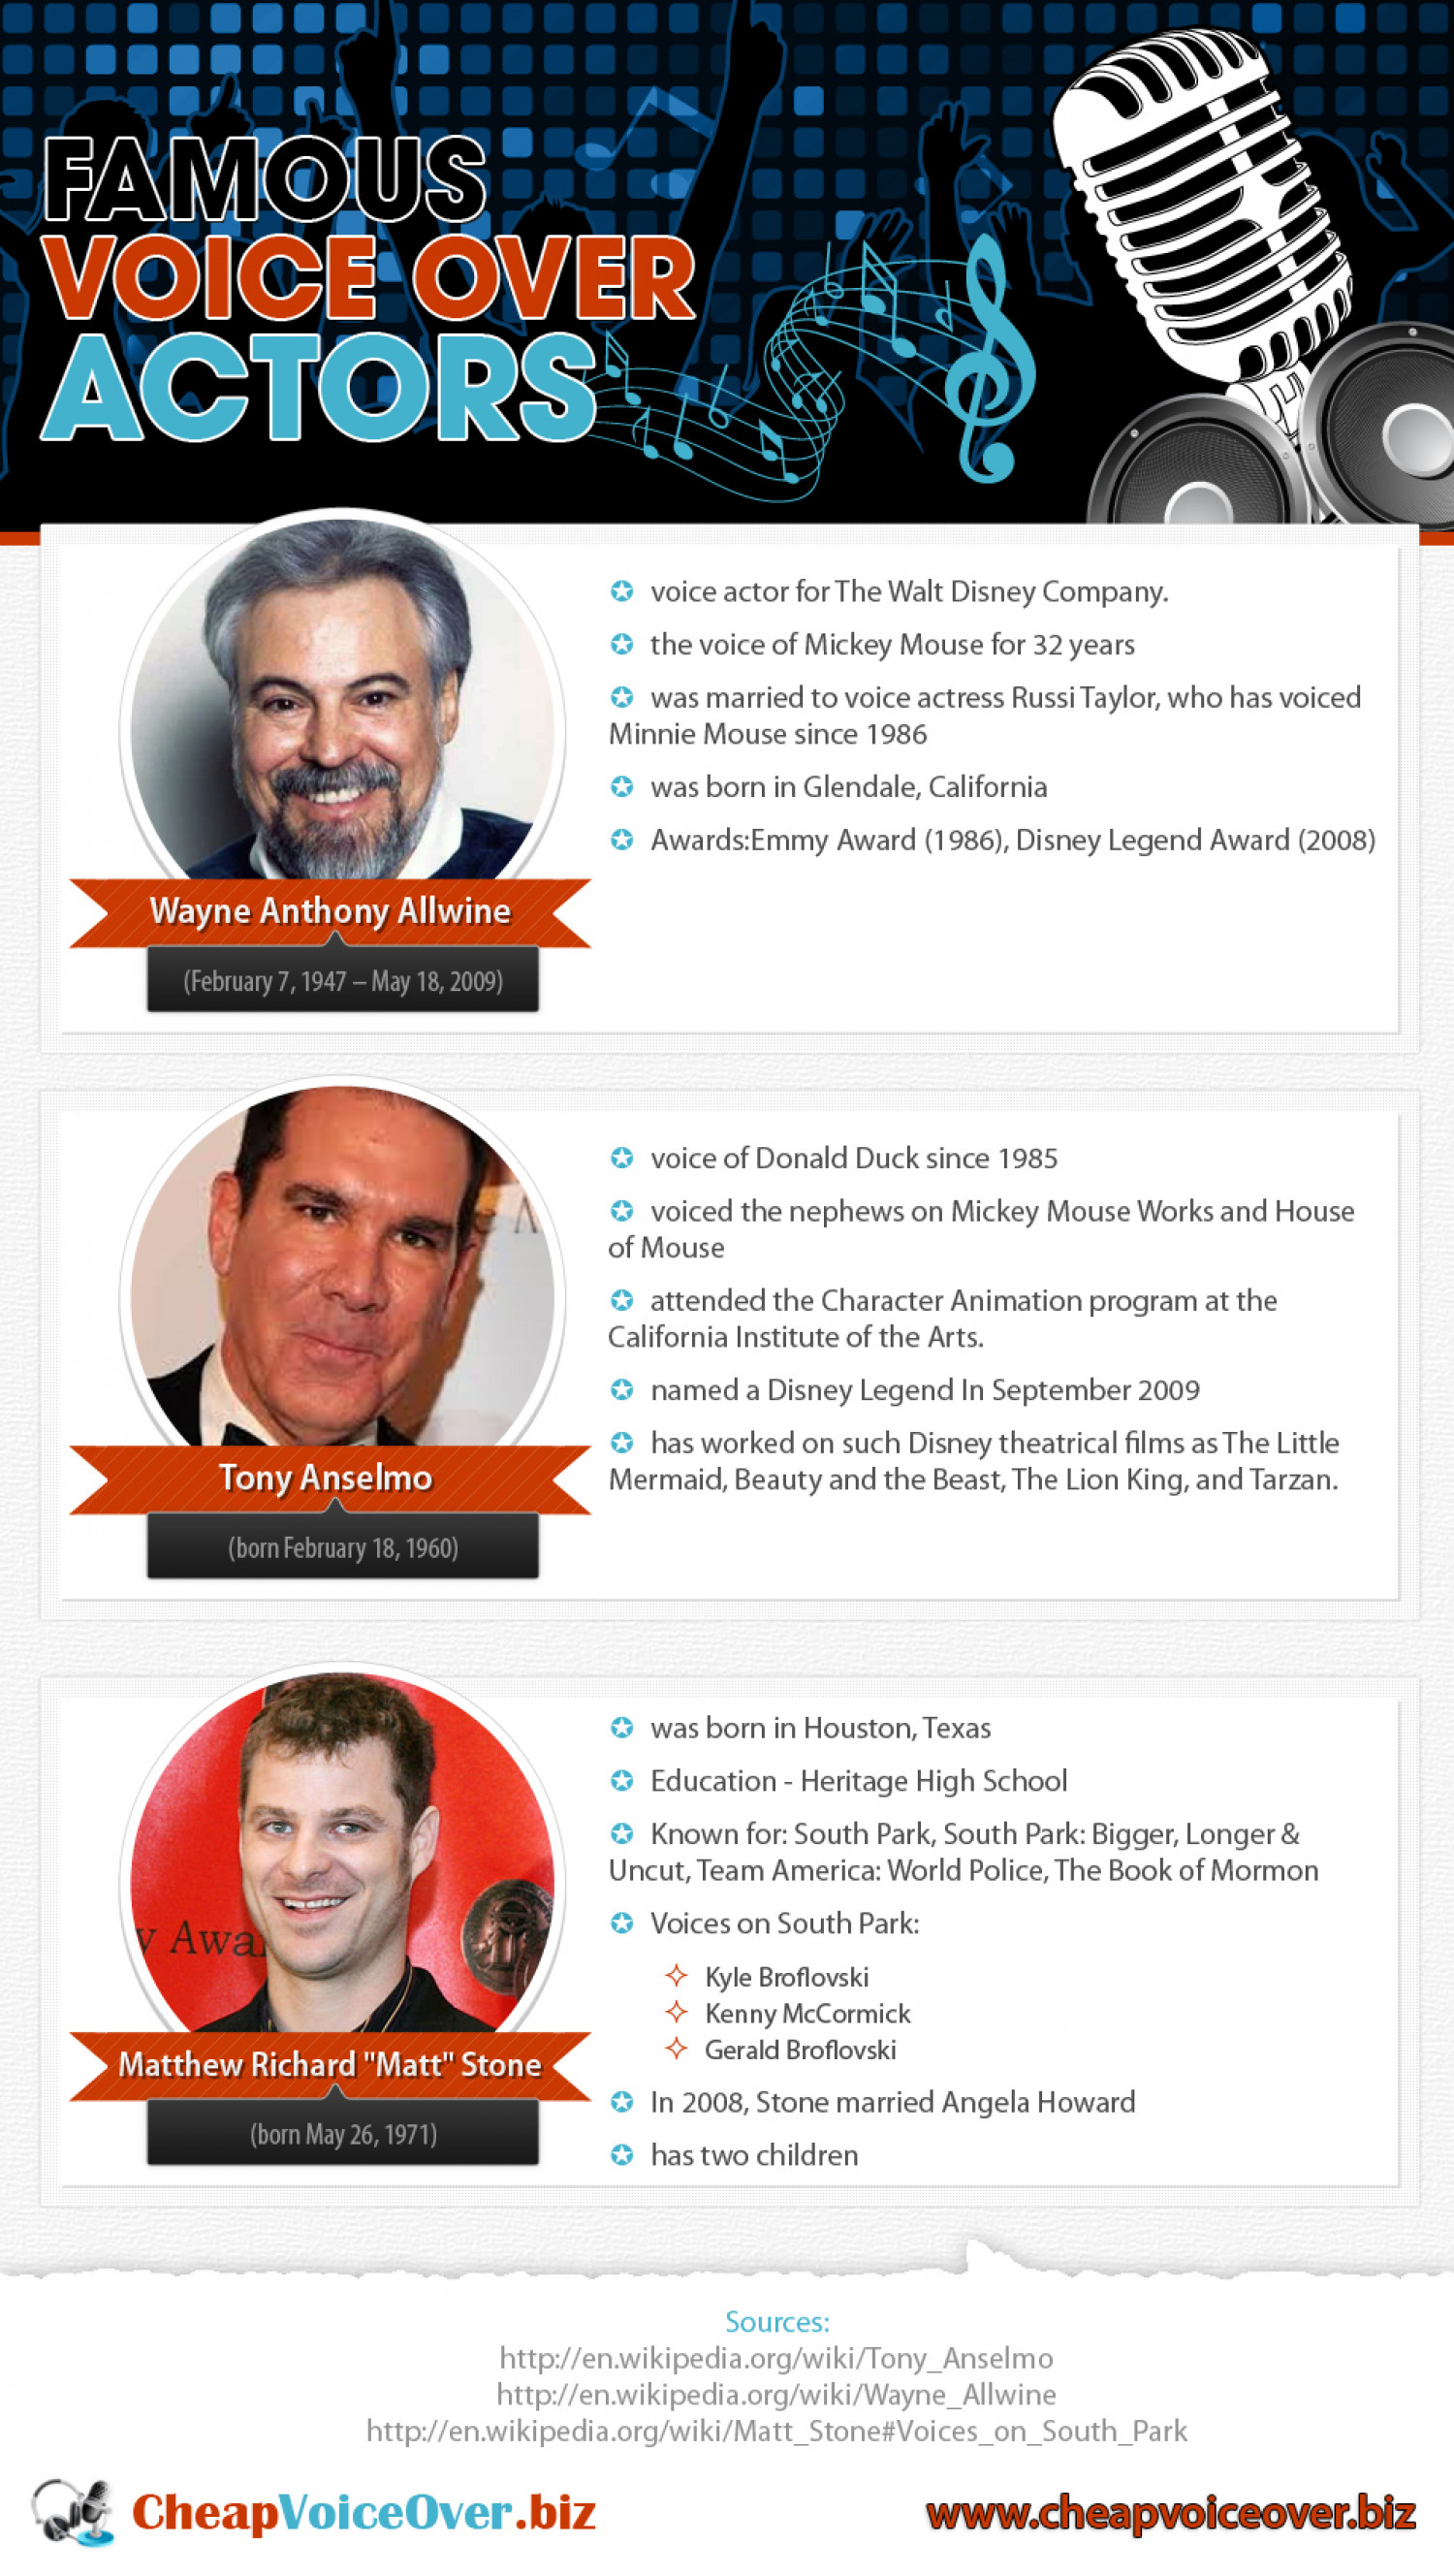 Famous Voice Over Actors Infographic